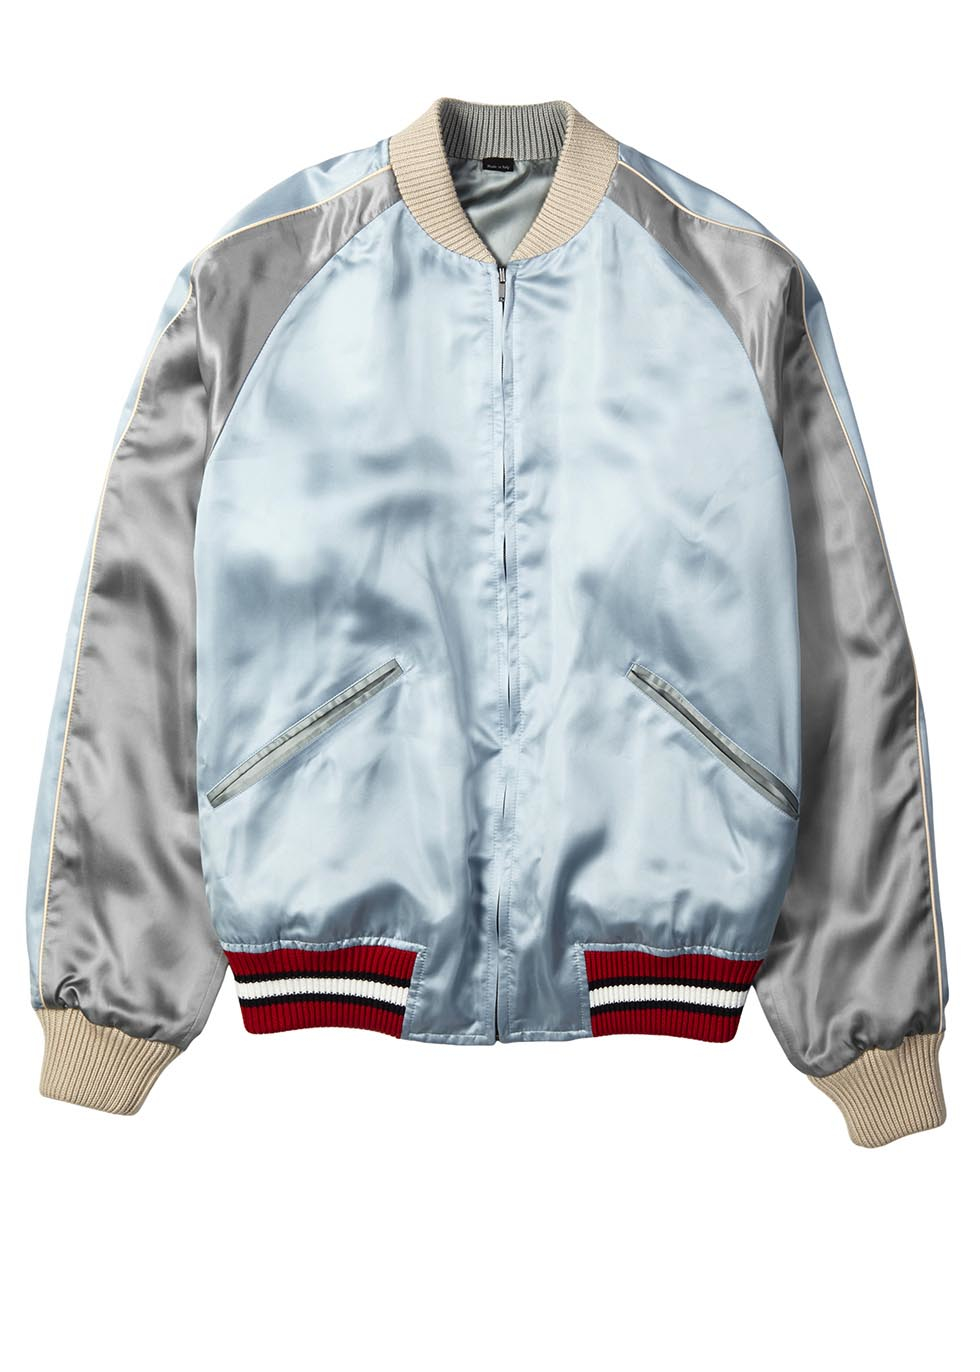 c0317a7bc41b6b Gucci Reversible Embroidered Satin Bomber Jacket in Blue for Men - Lyst